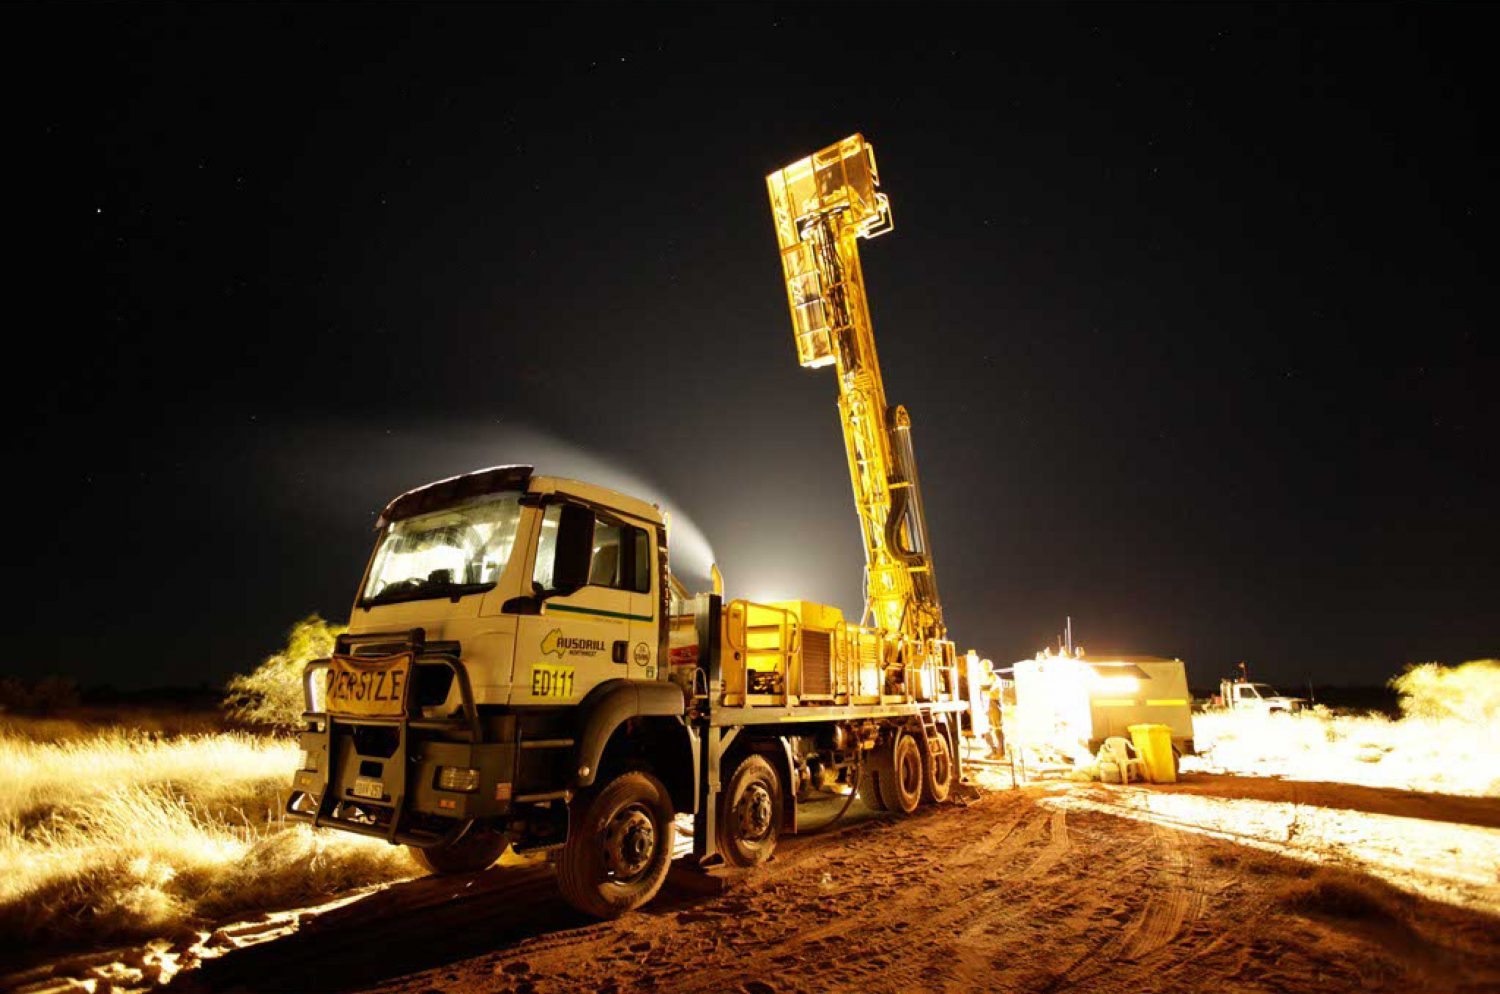 BARMINCO TO BE ACQUIRED BY AUSDRILL